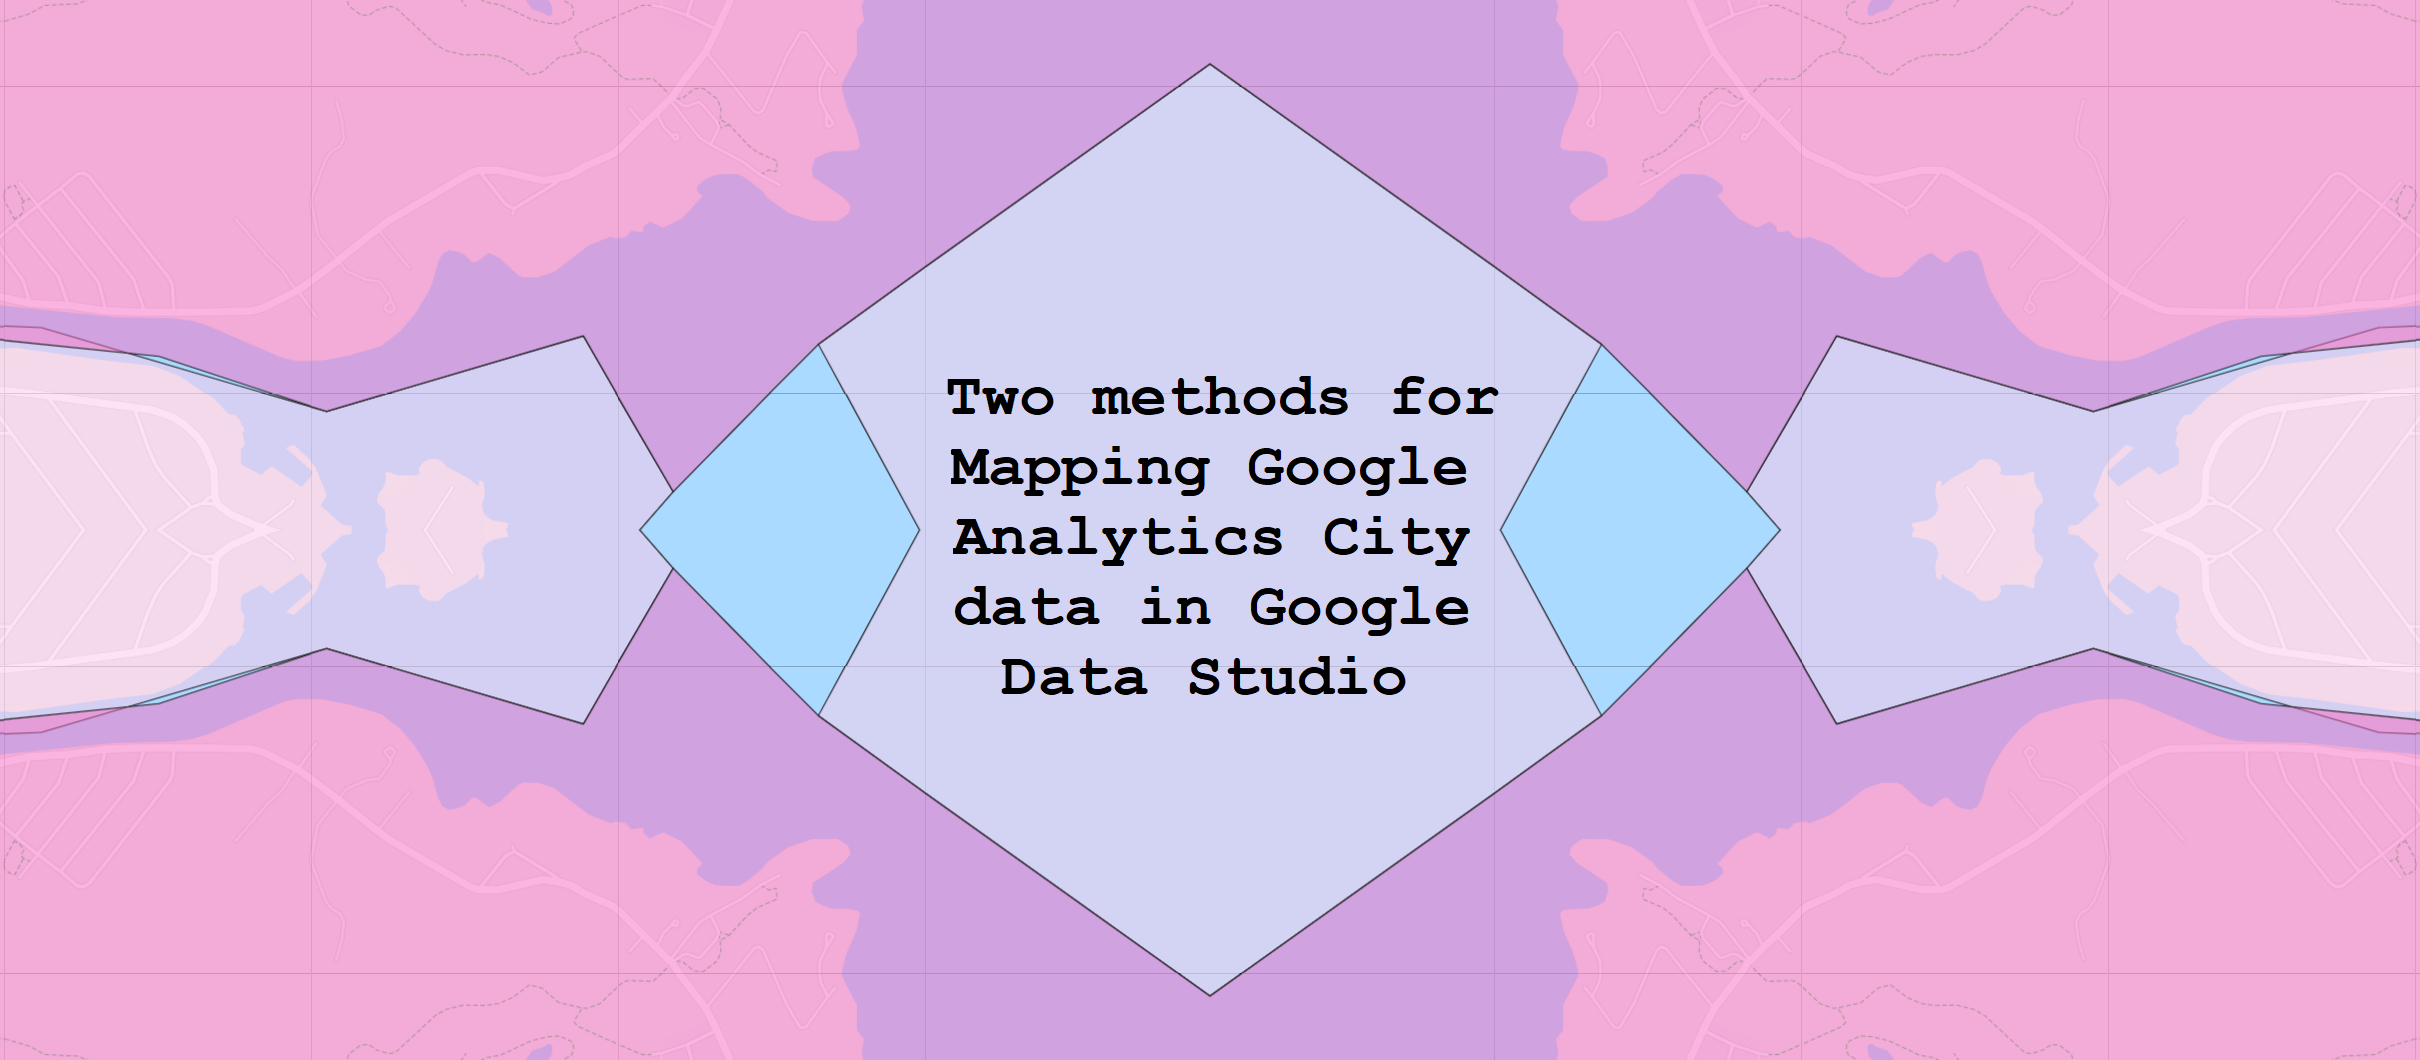 Two methods for Mapping Google Analytics City data in Google Data Studio